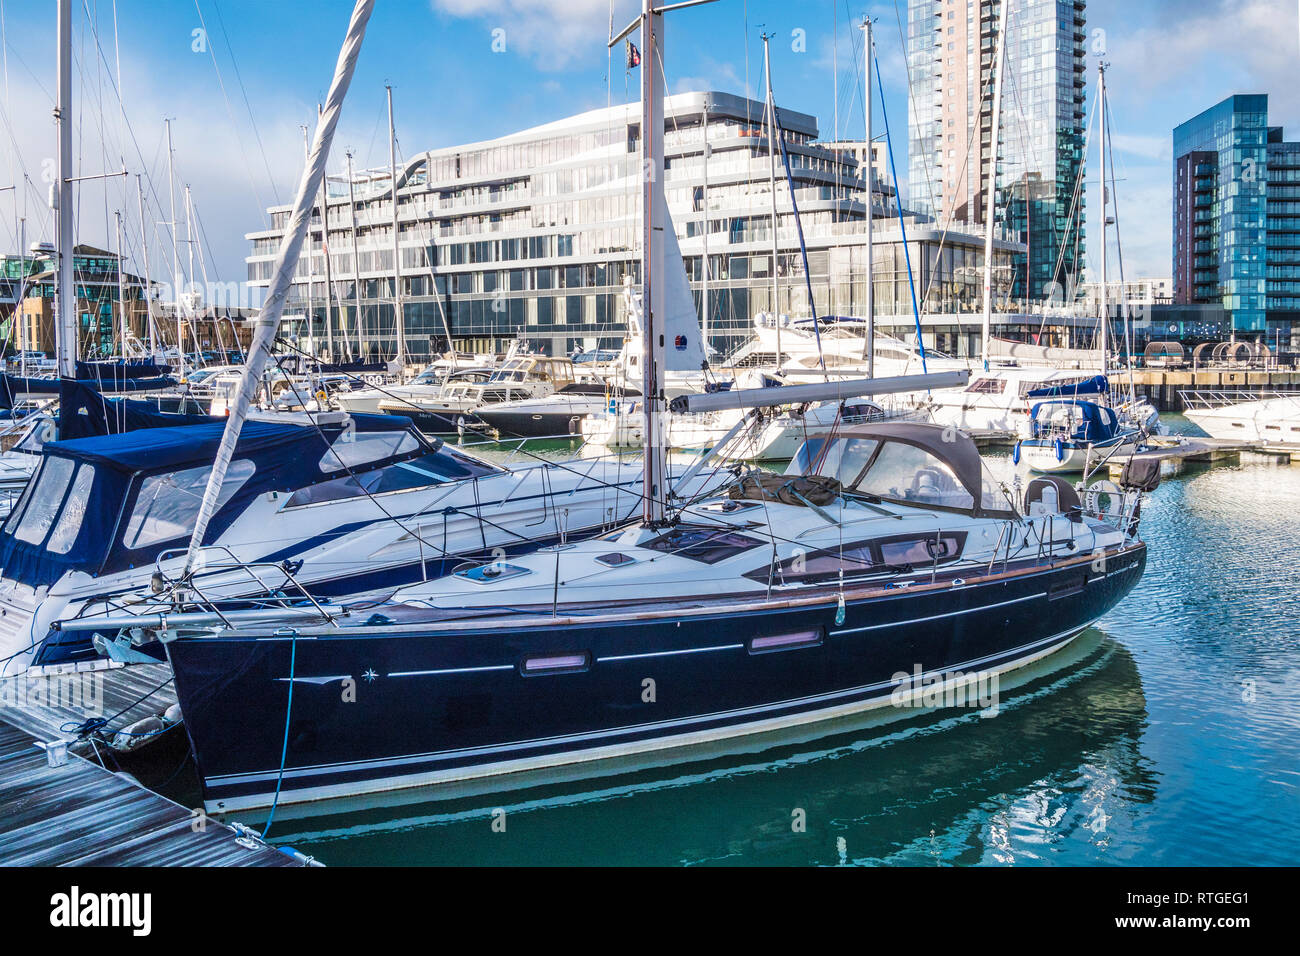 The Ocean Village Marina in Southampton, UK. - Stock Image